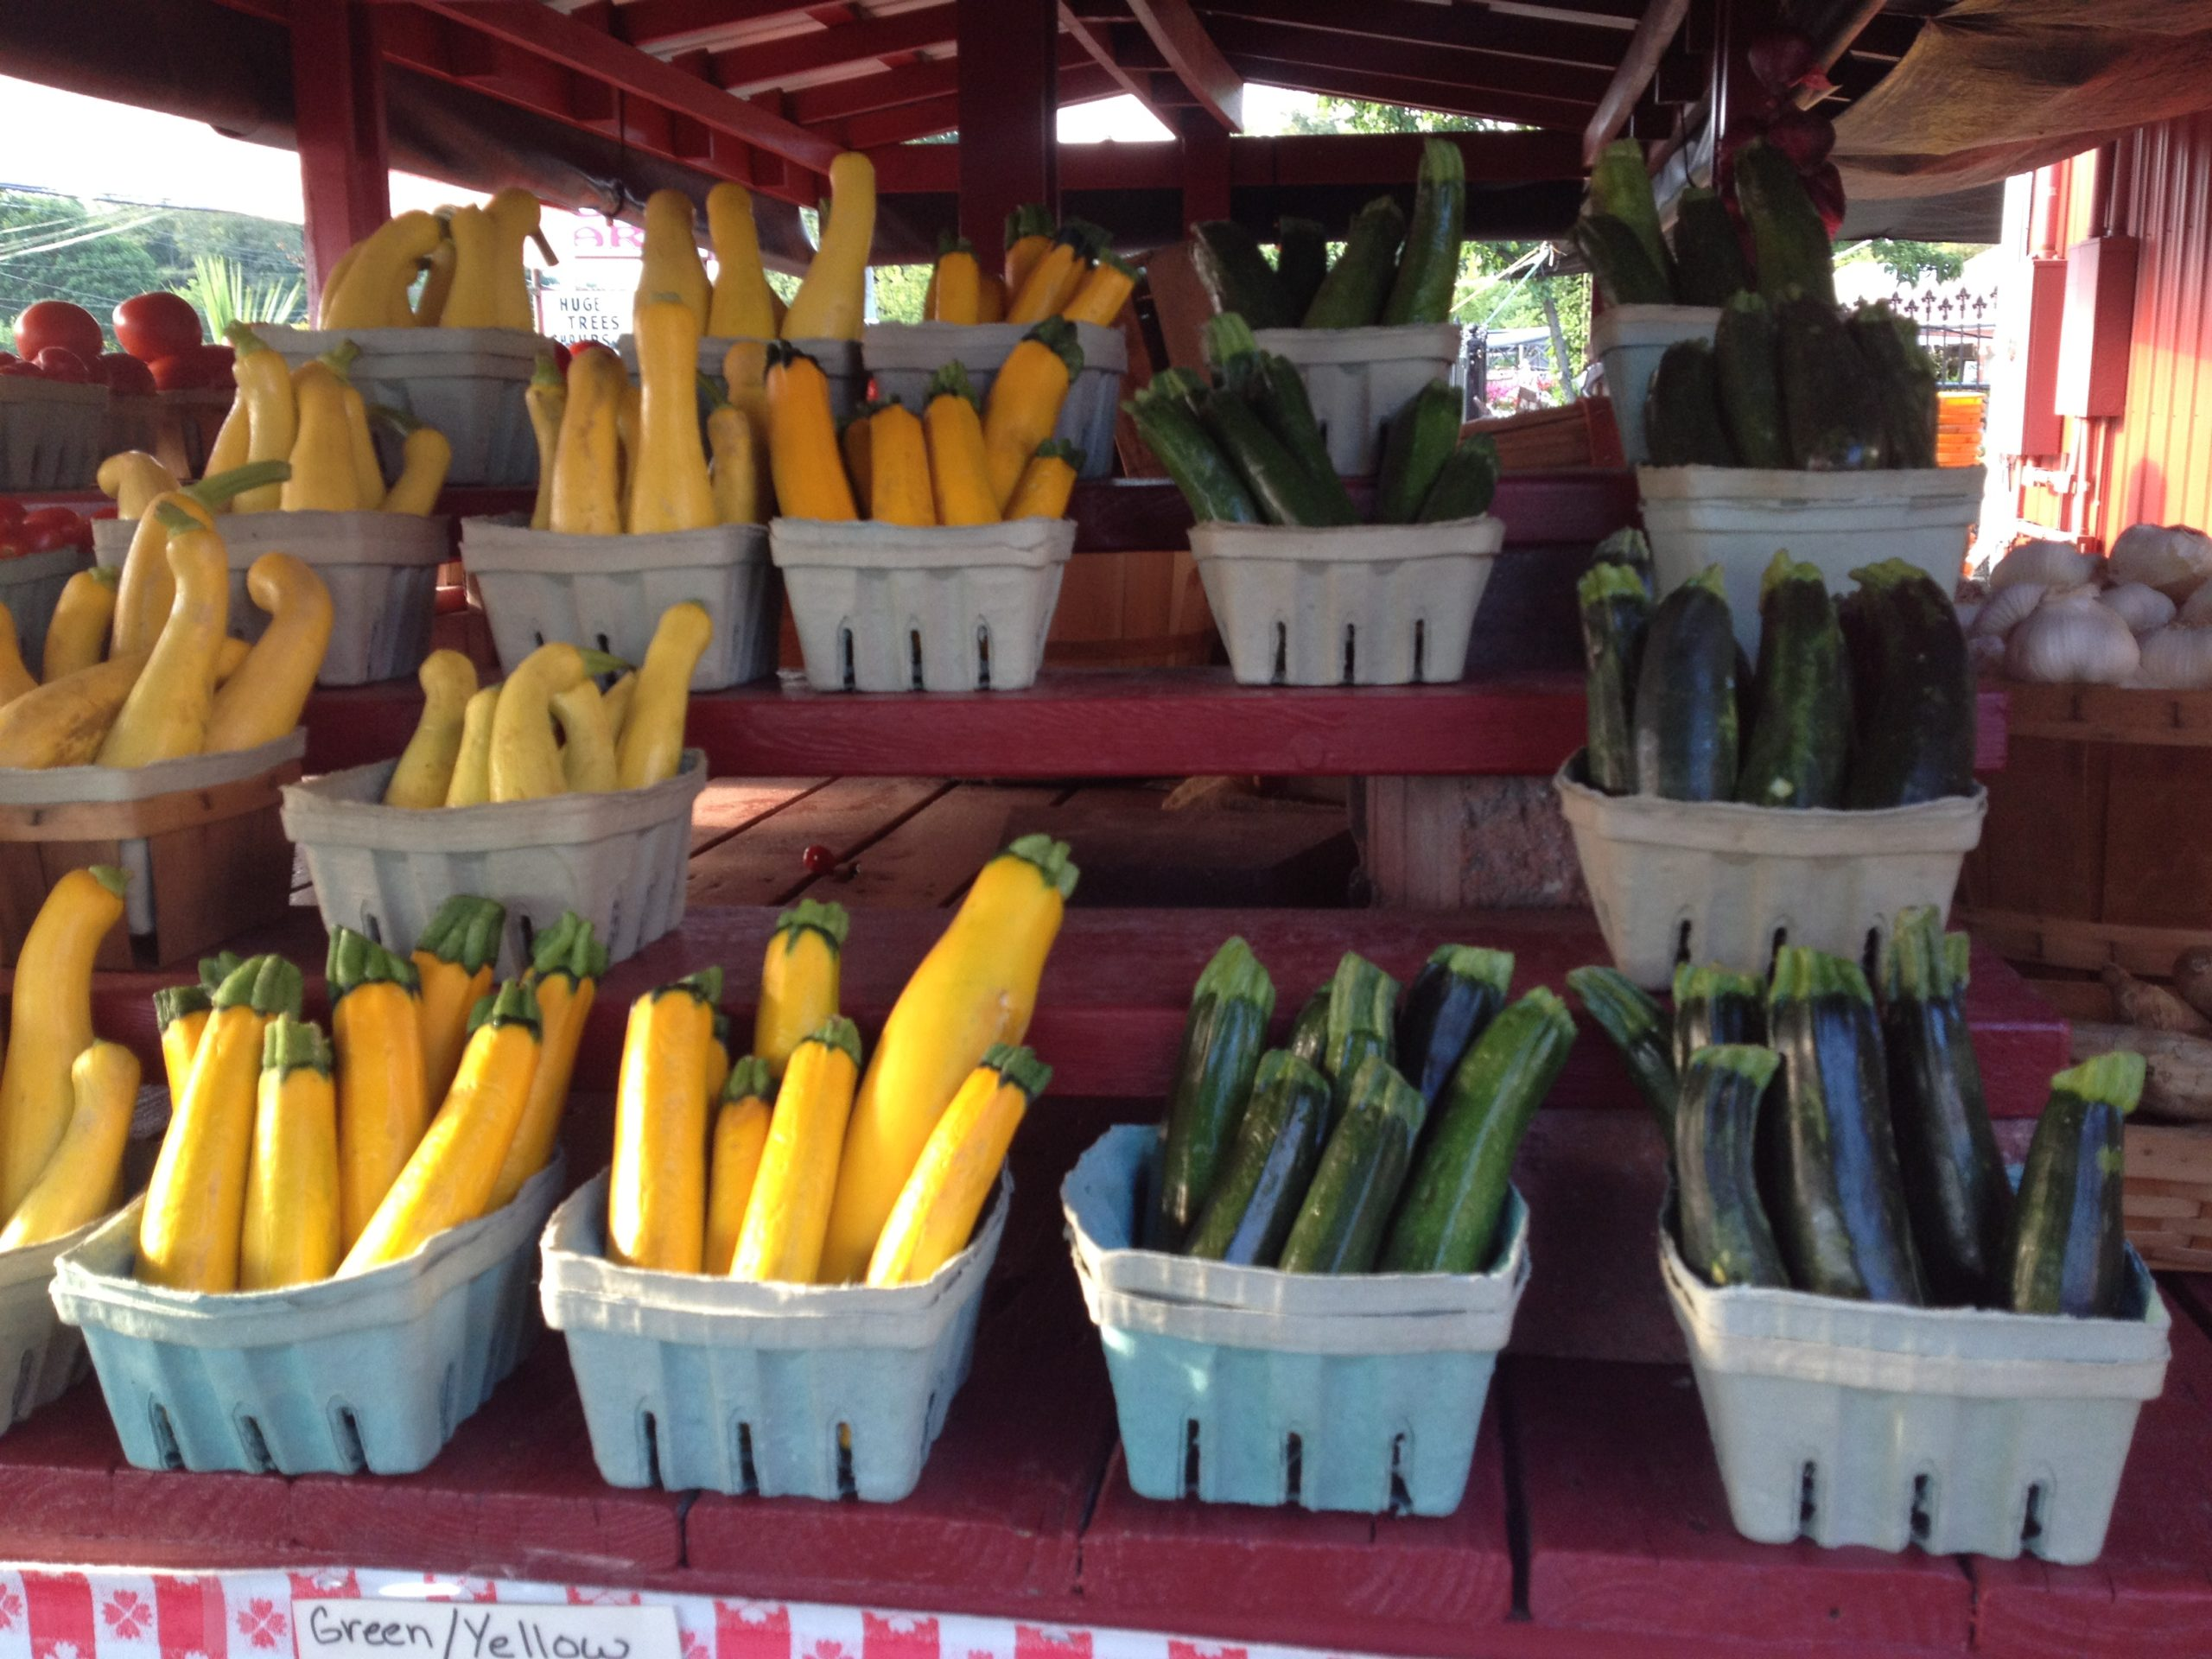 yellow squash and zucchini in baskets at a farmstand